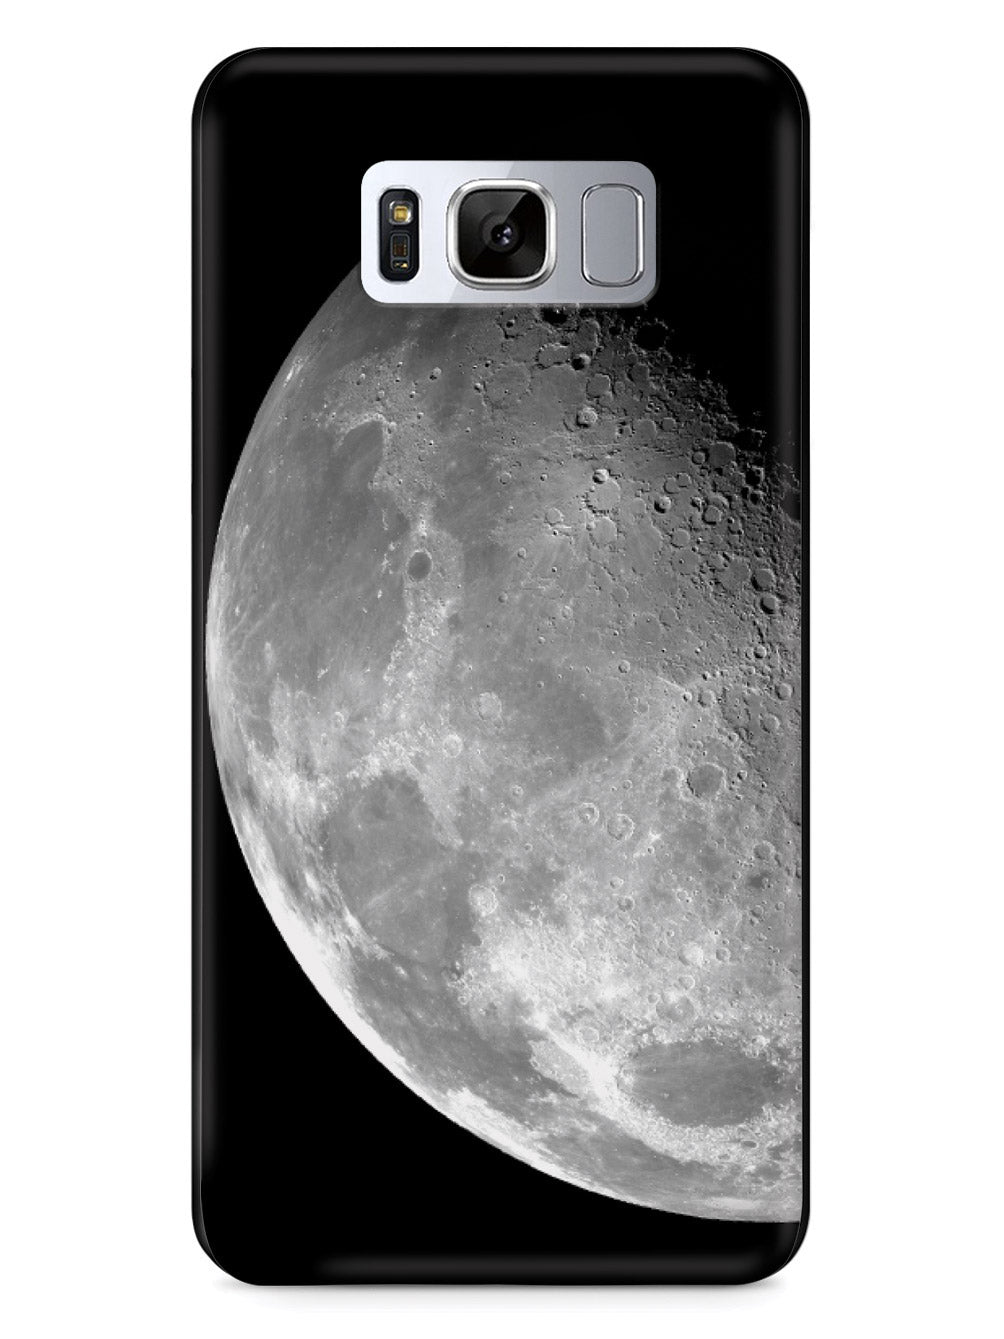 The Moon - Outer Space Photograph Case